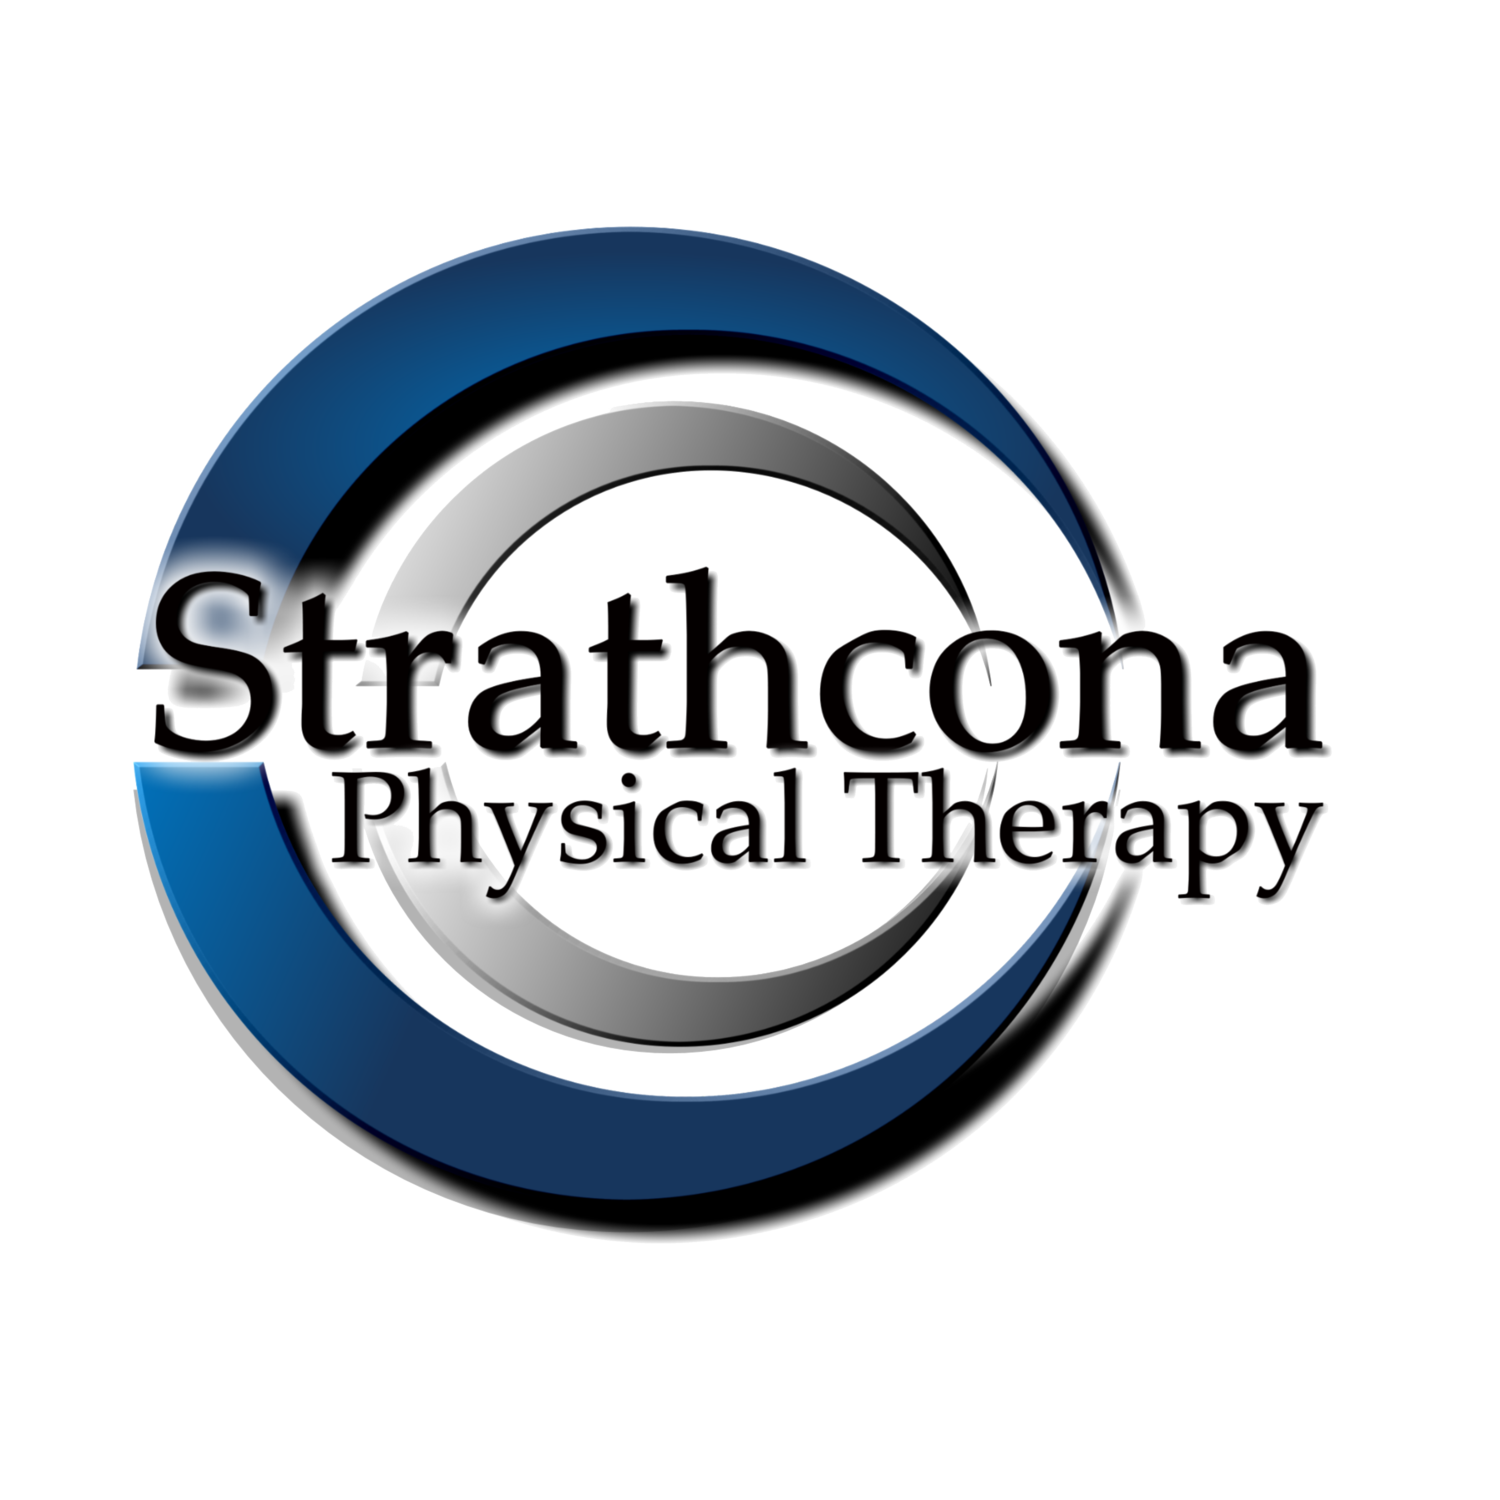 Strathcona Physical Therapy